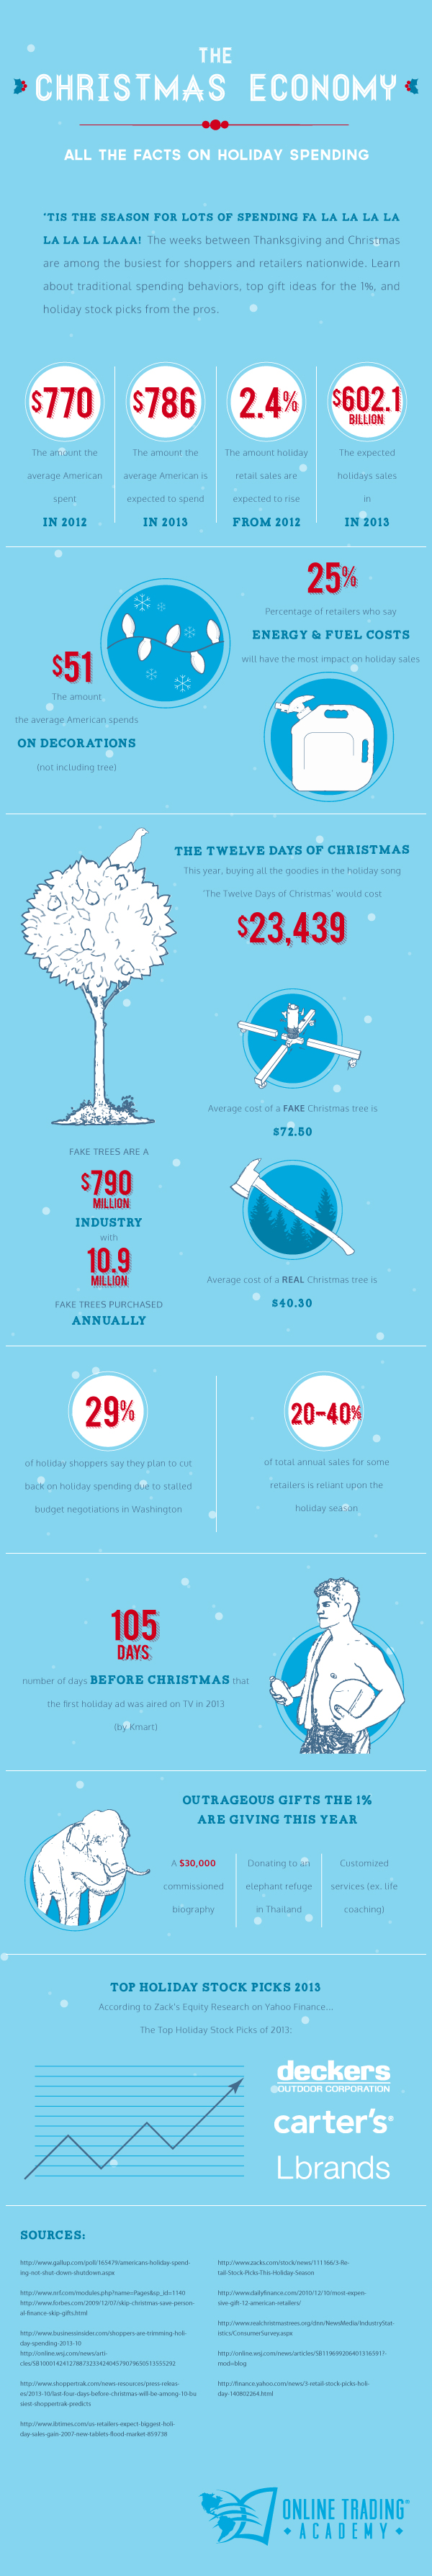 2013 Holiday Spending